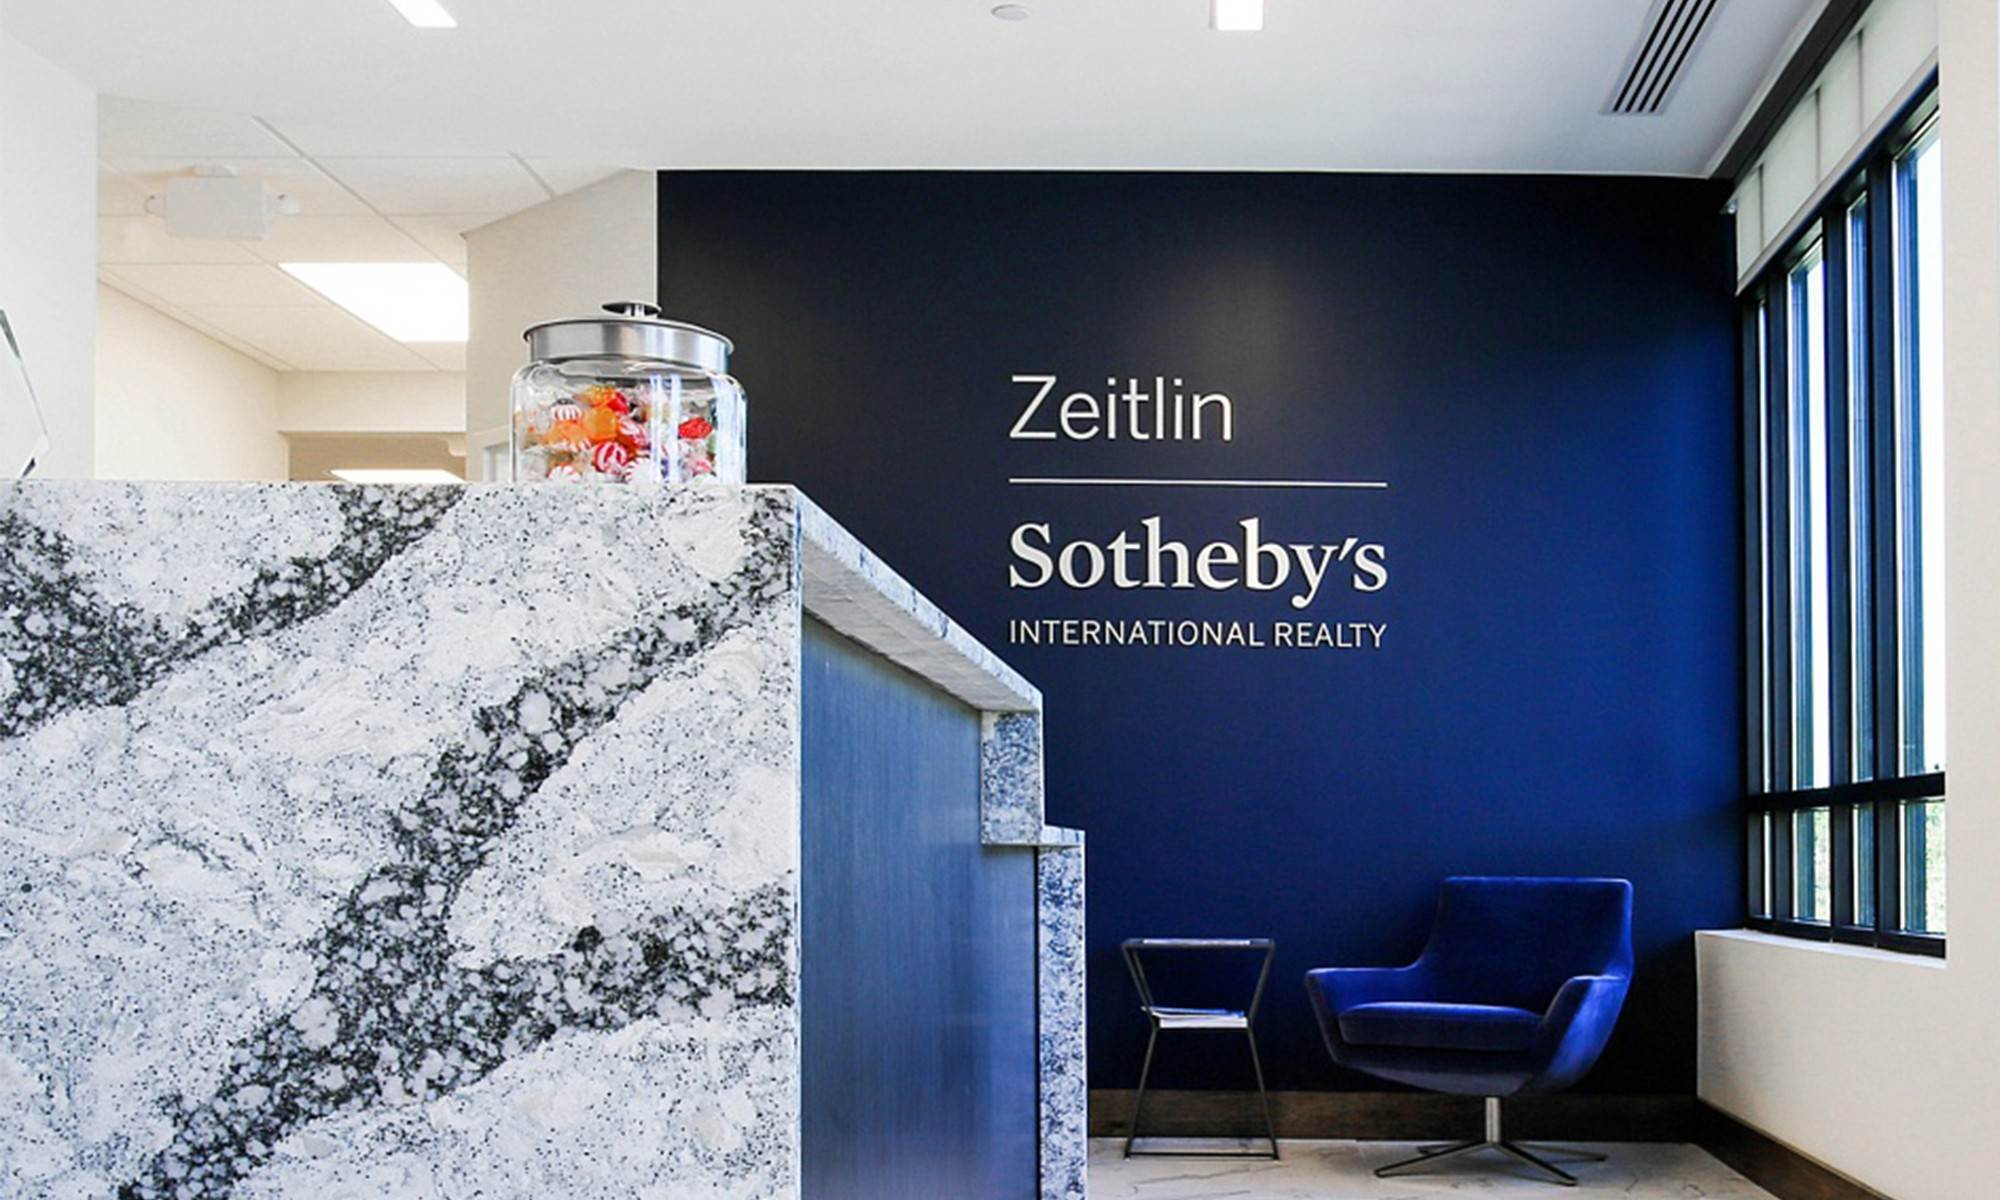 Zeitlin Sotheby's International Realty